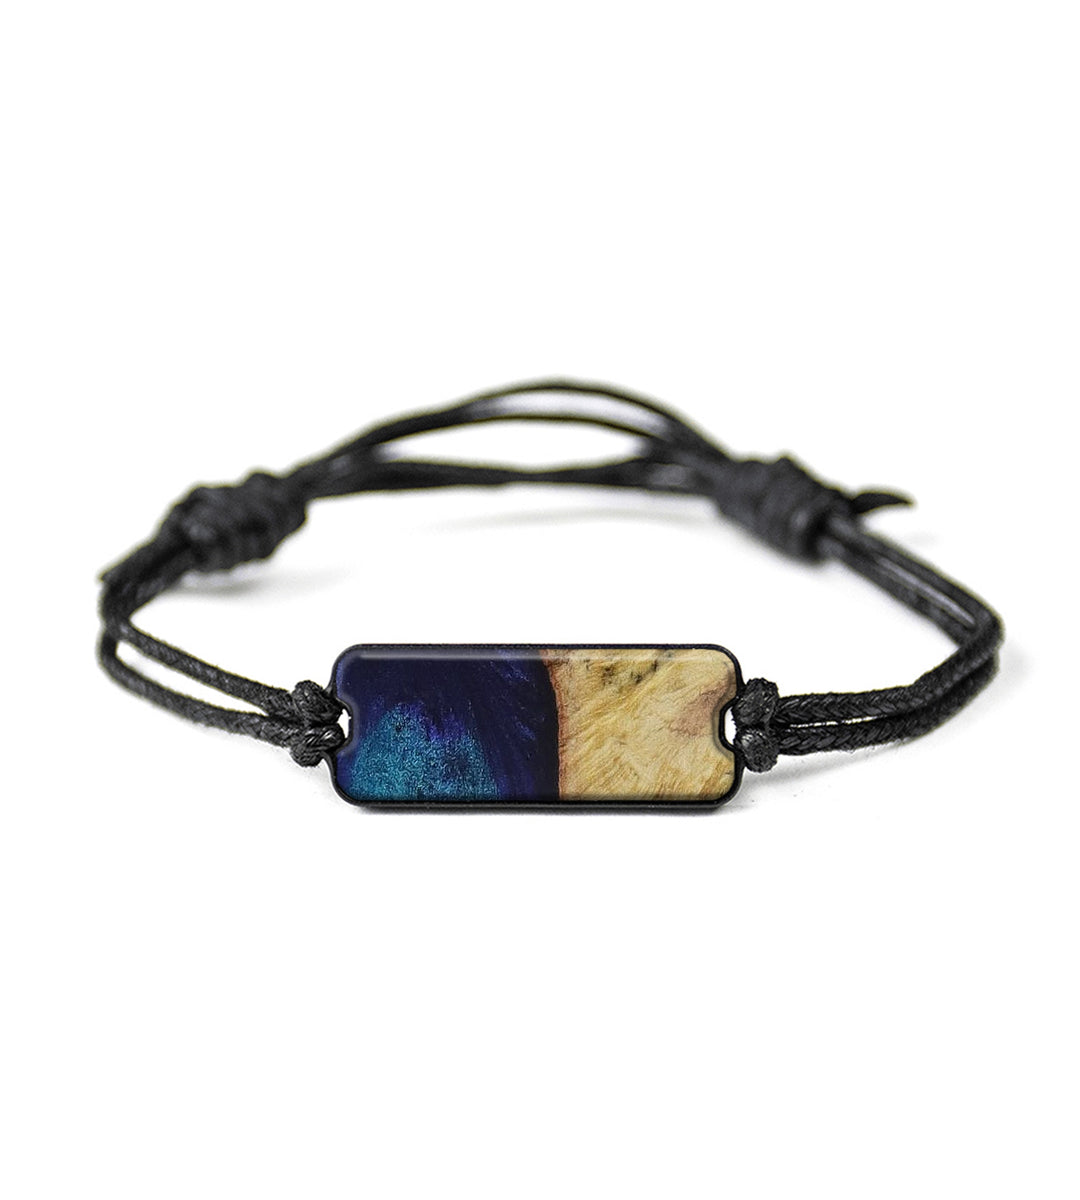 Classic Wood+Resin Bracelet - Marcia (Dark Blue, 423092)